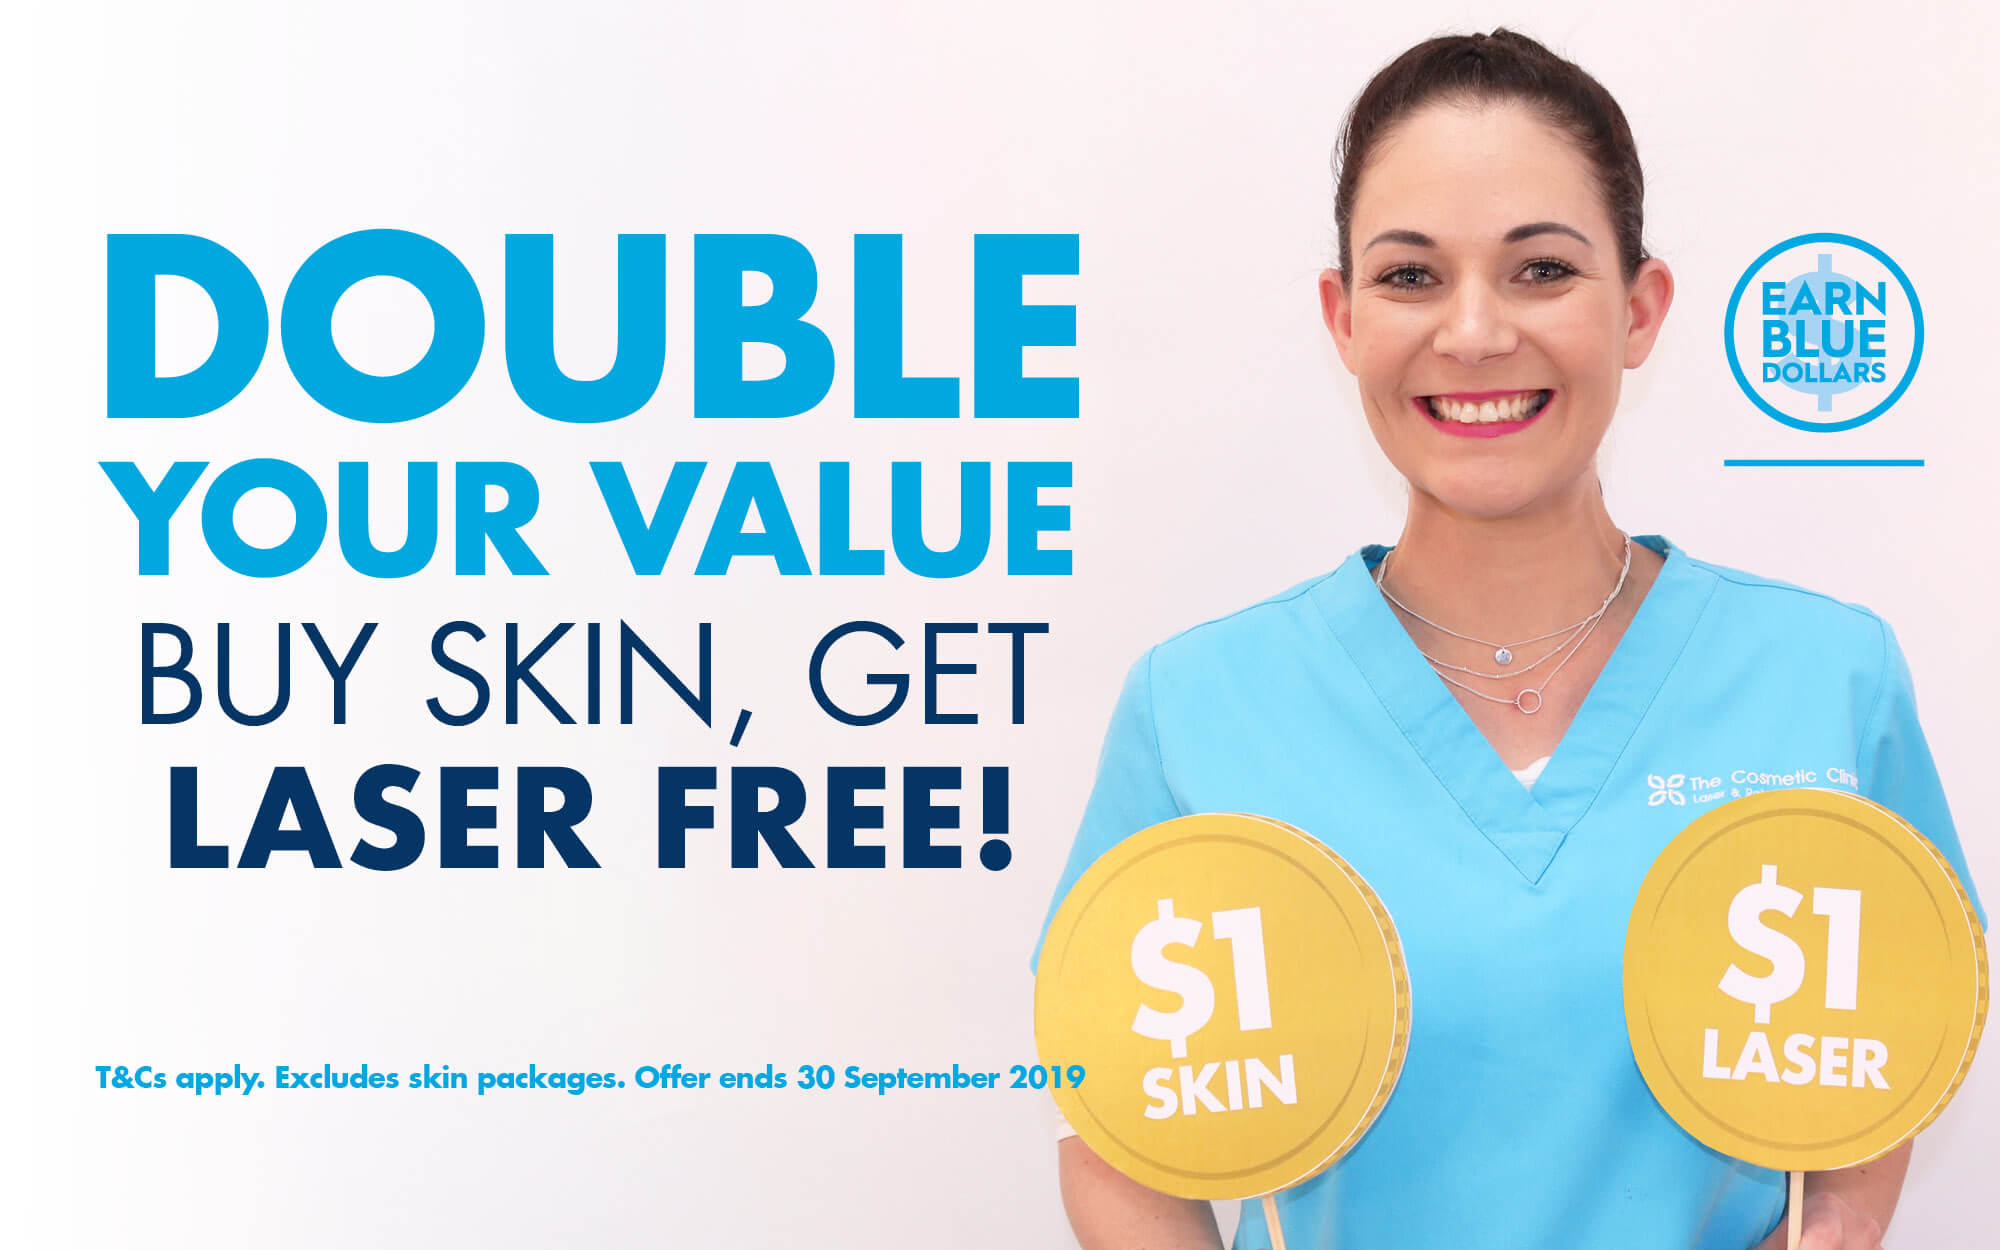 The Cosmetic Clinic | Laser, Skin, Injectables | New Zealand